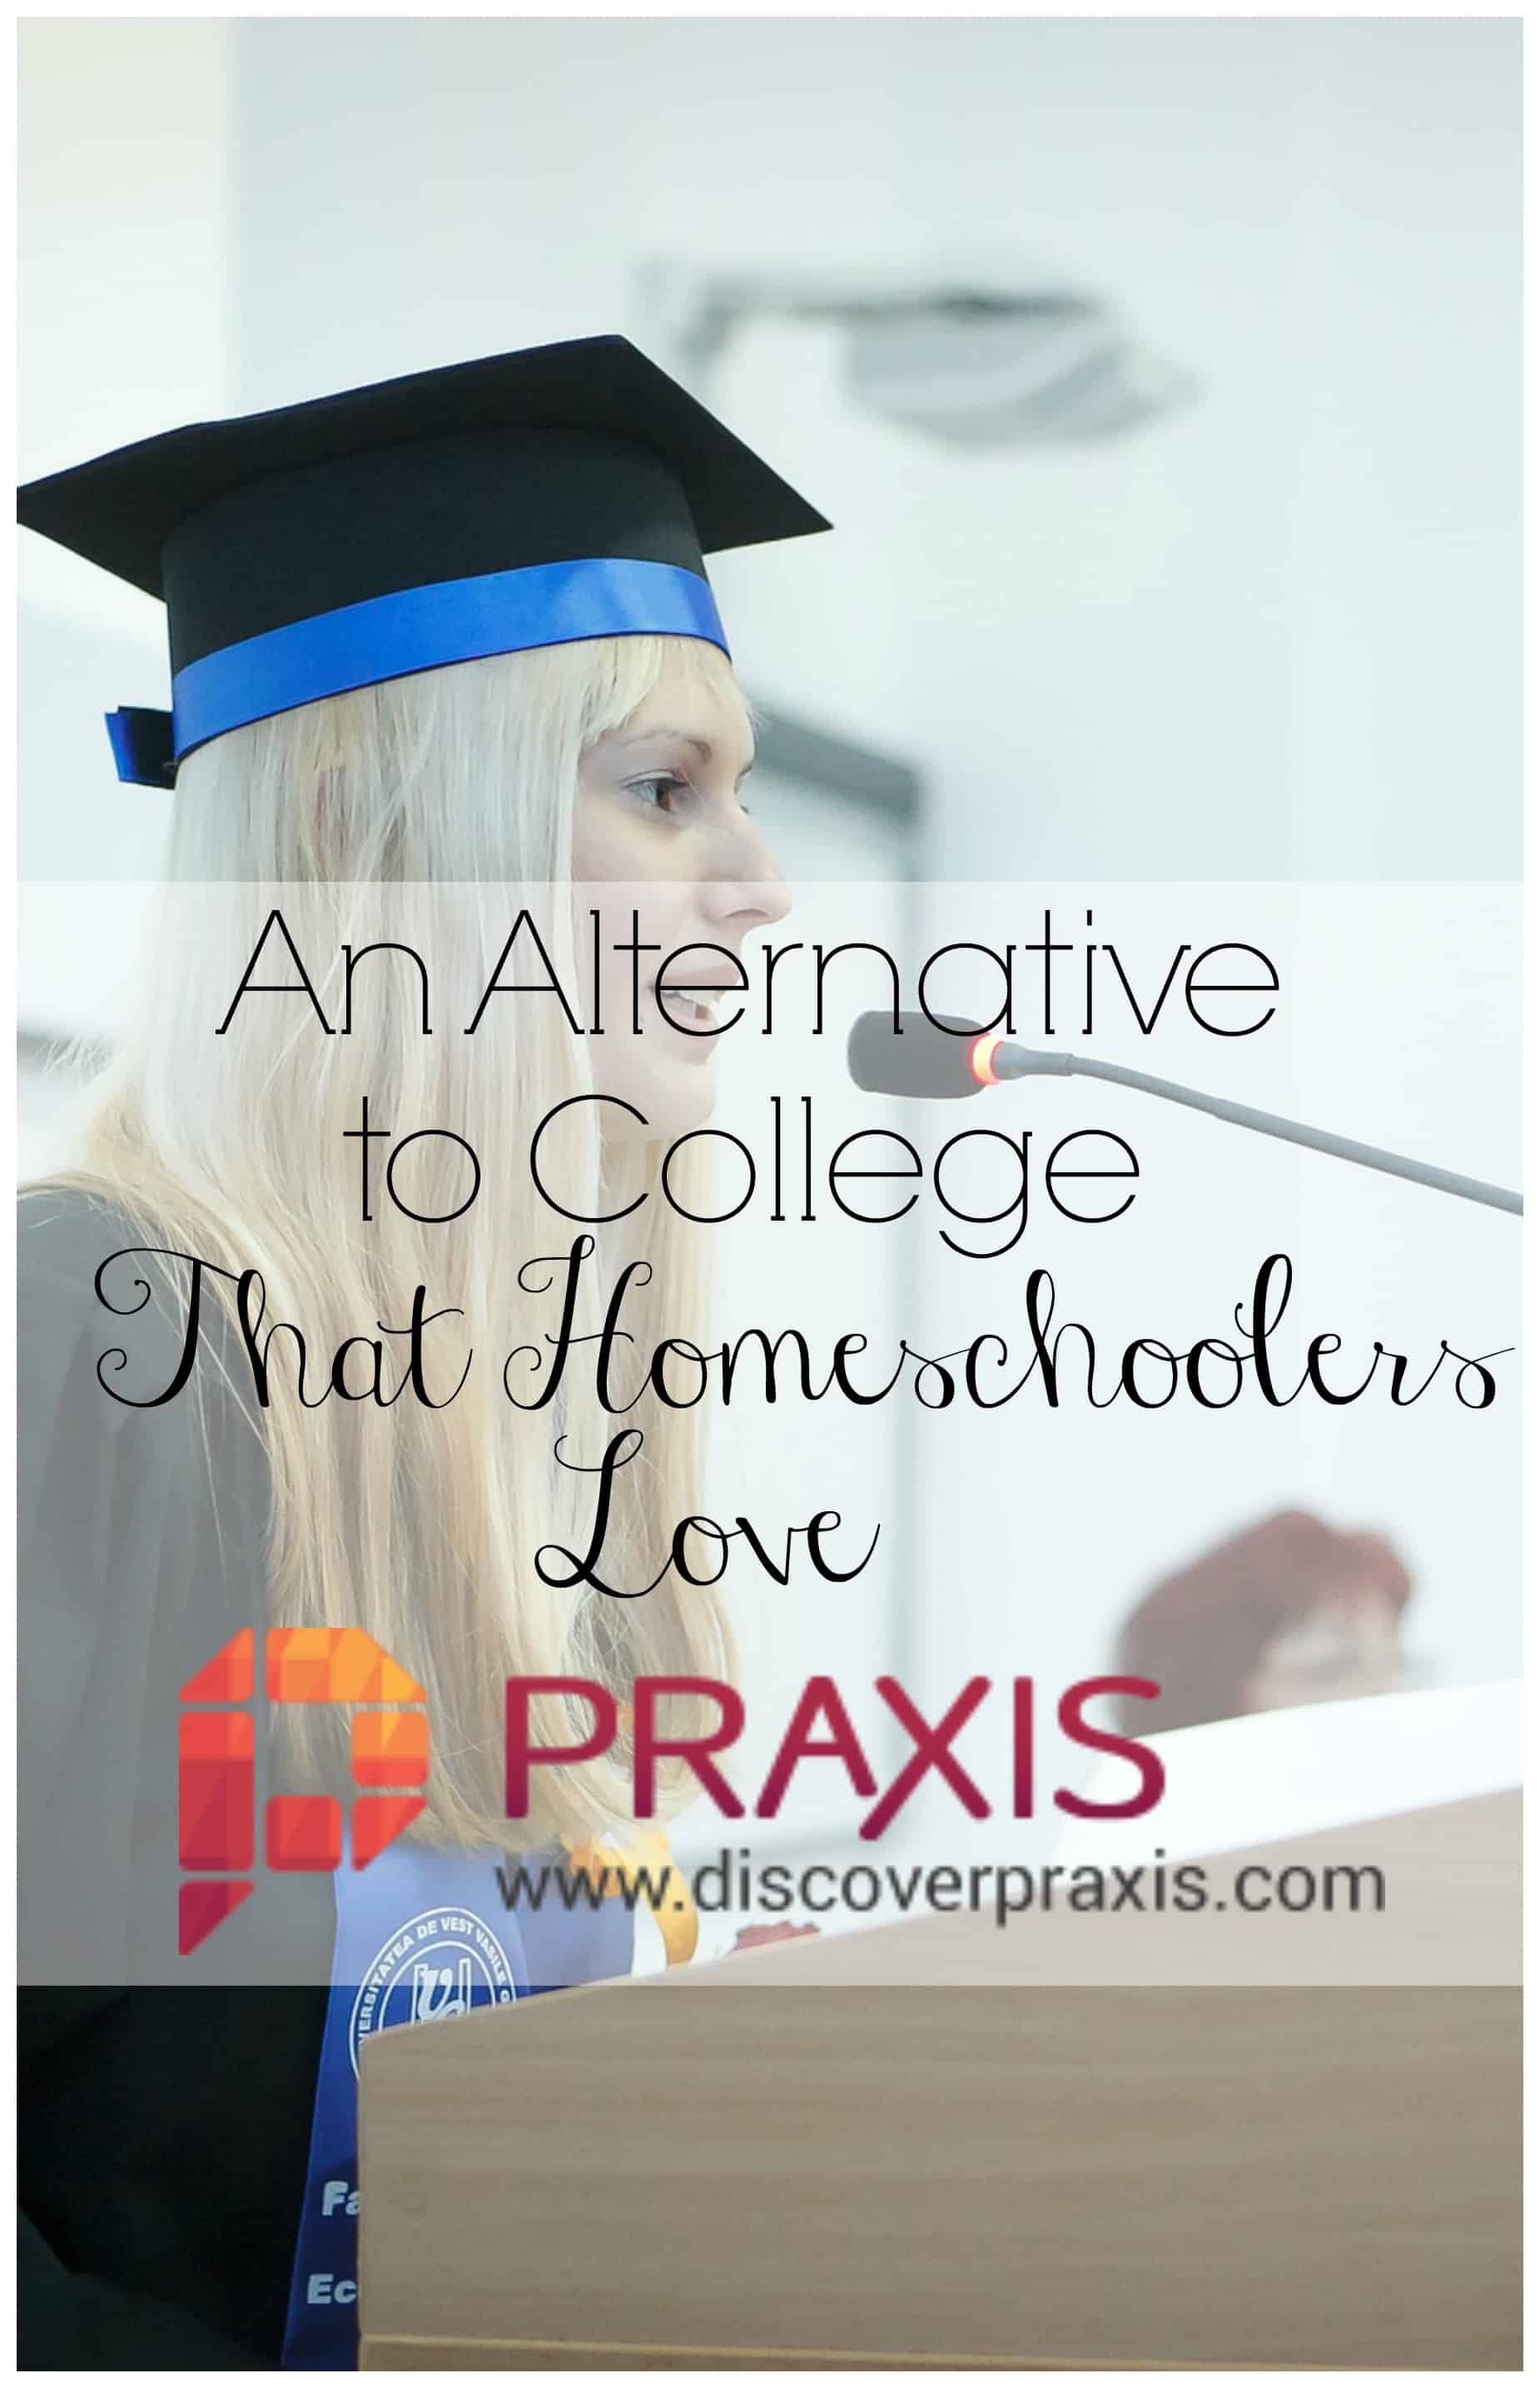 Praxis- A College Alternative That Homeschoolers Love!